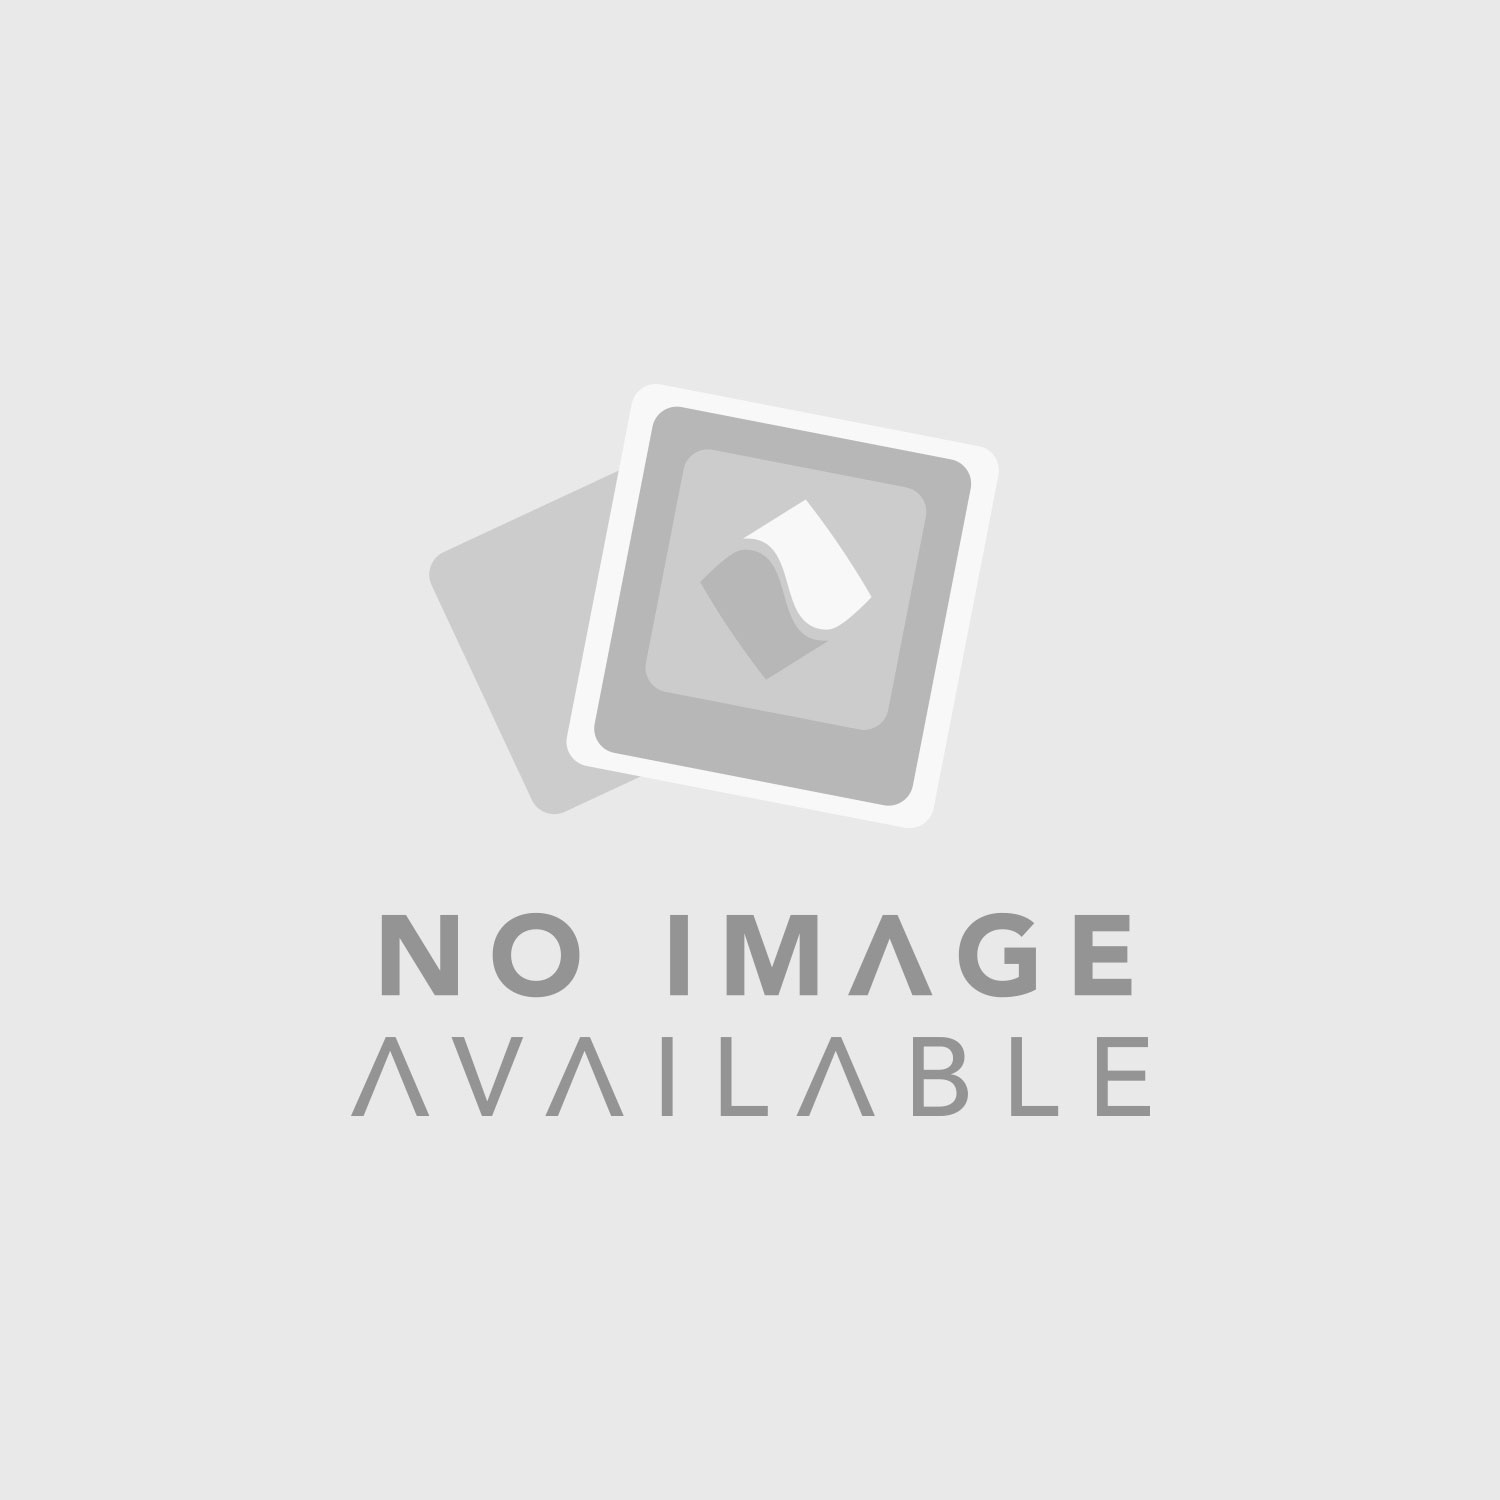 Adam Audio A3X-Sub7 Nearfield Monitors and Subwoofer Bundle